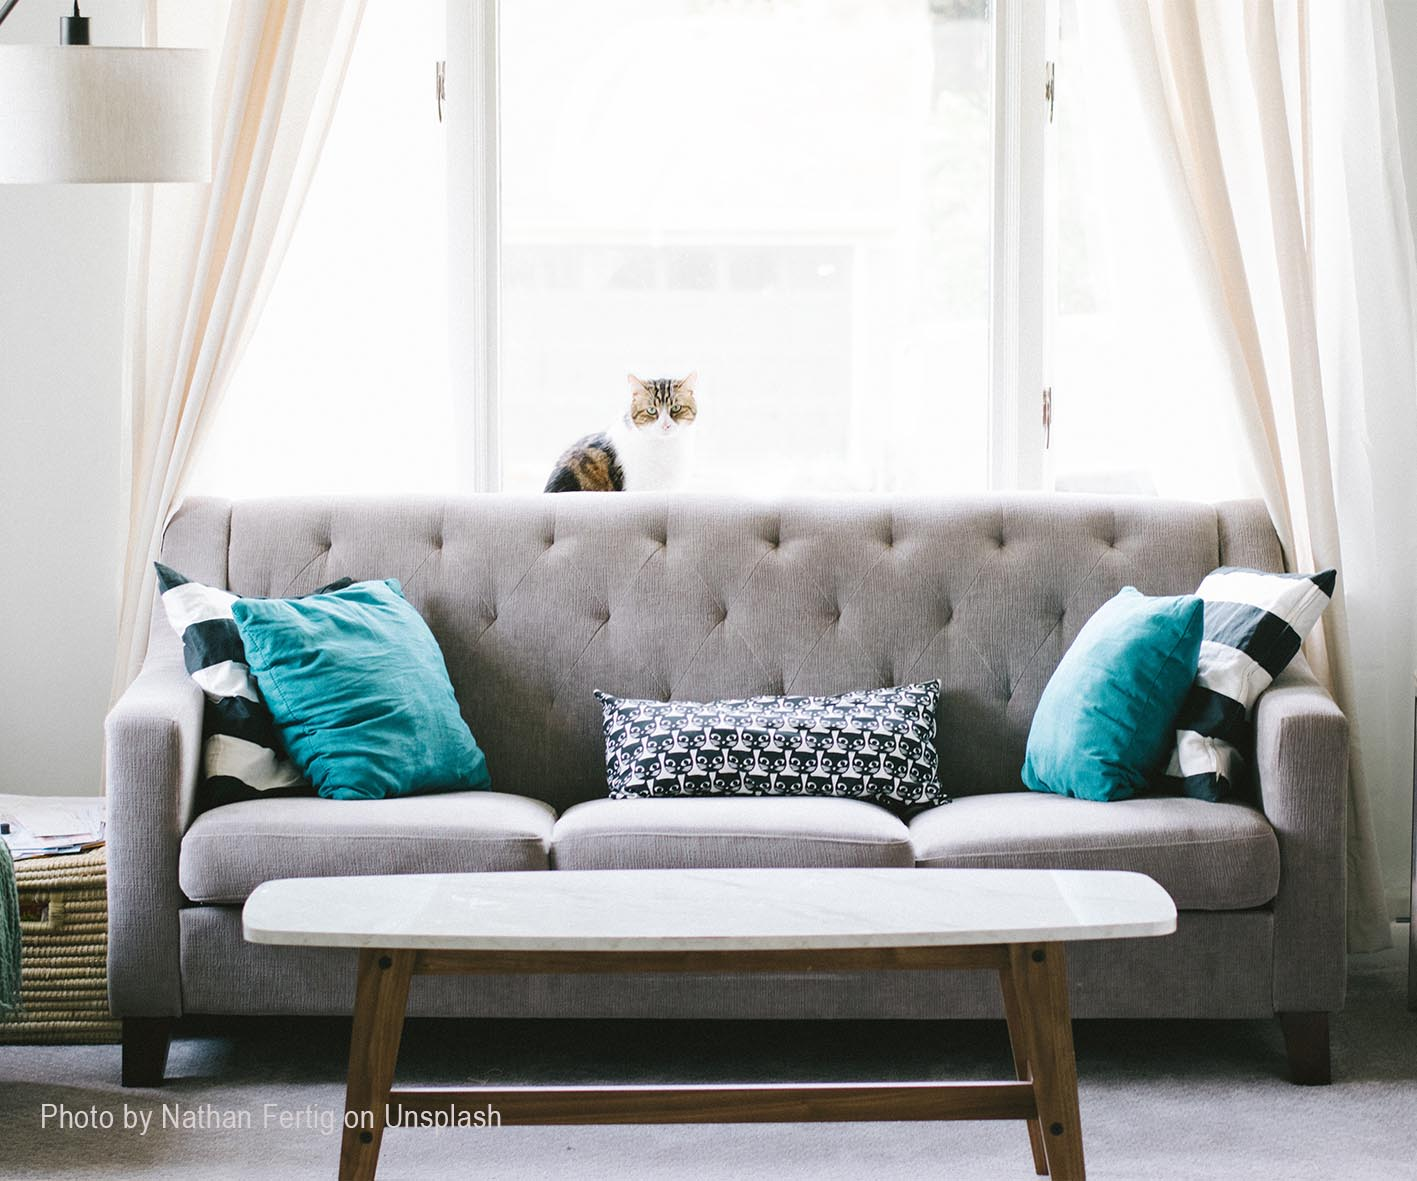 7-Tips-For-Styling-Apartments-+-Other-Small-Spaces - 7-Tips-For-Styling-Apartments-Other-Small-Spaces